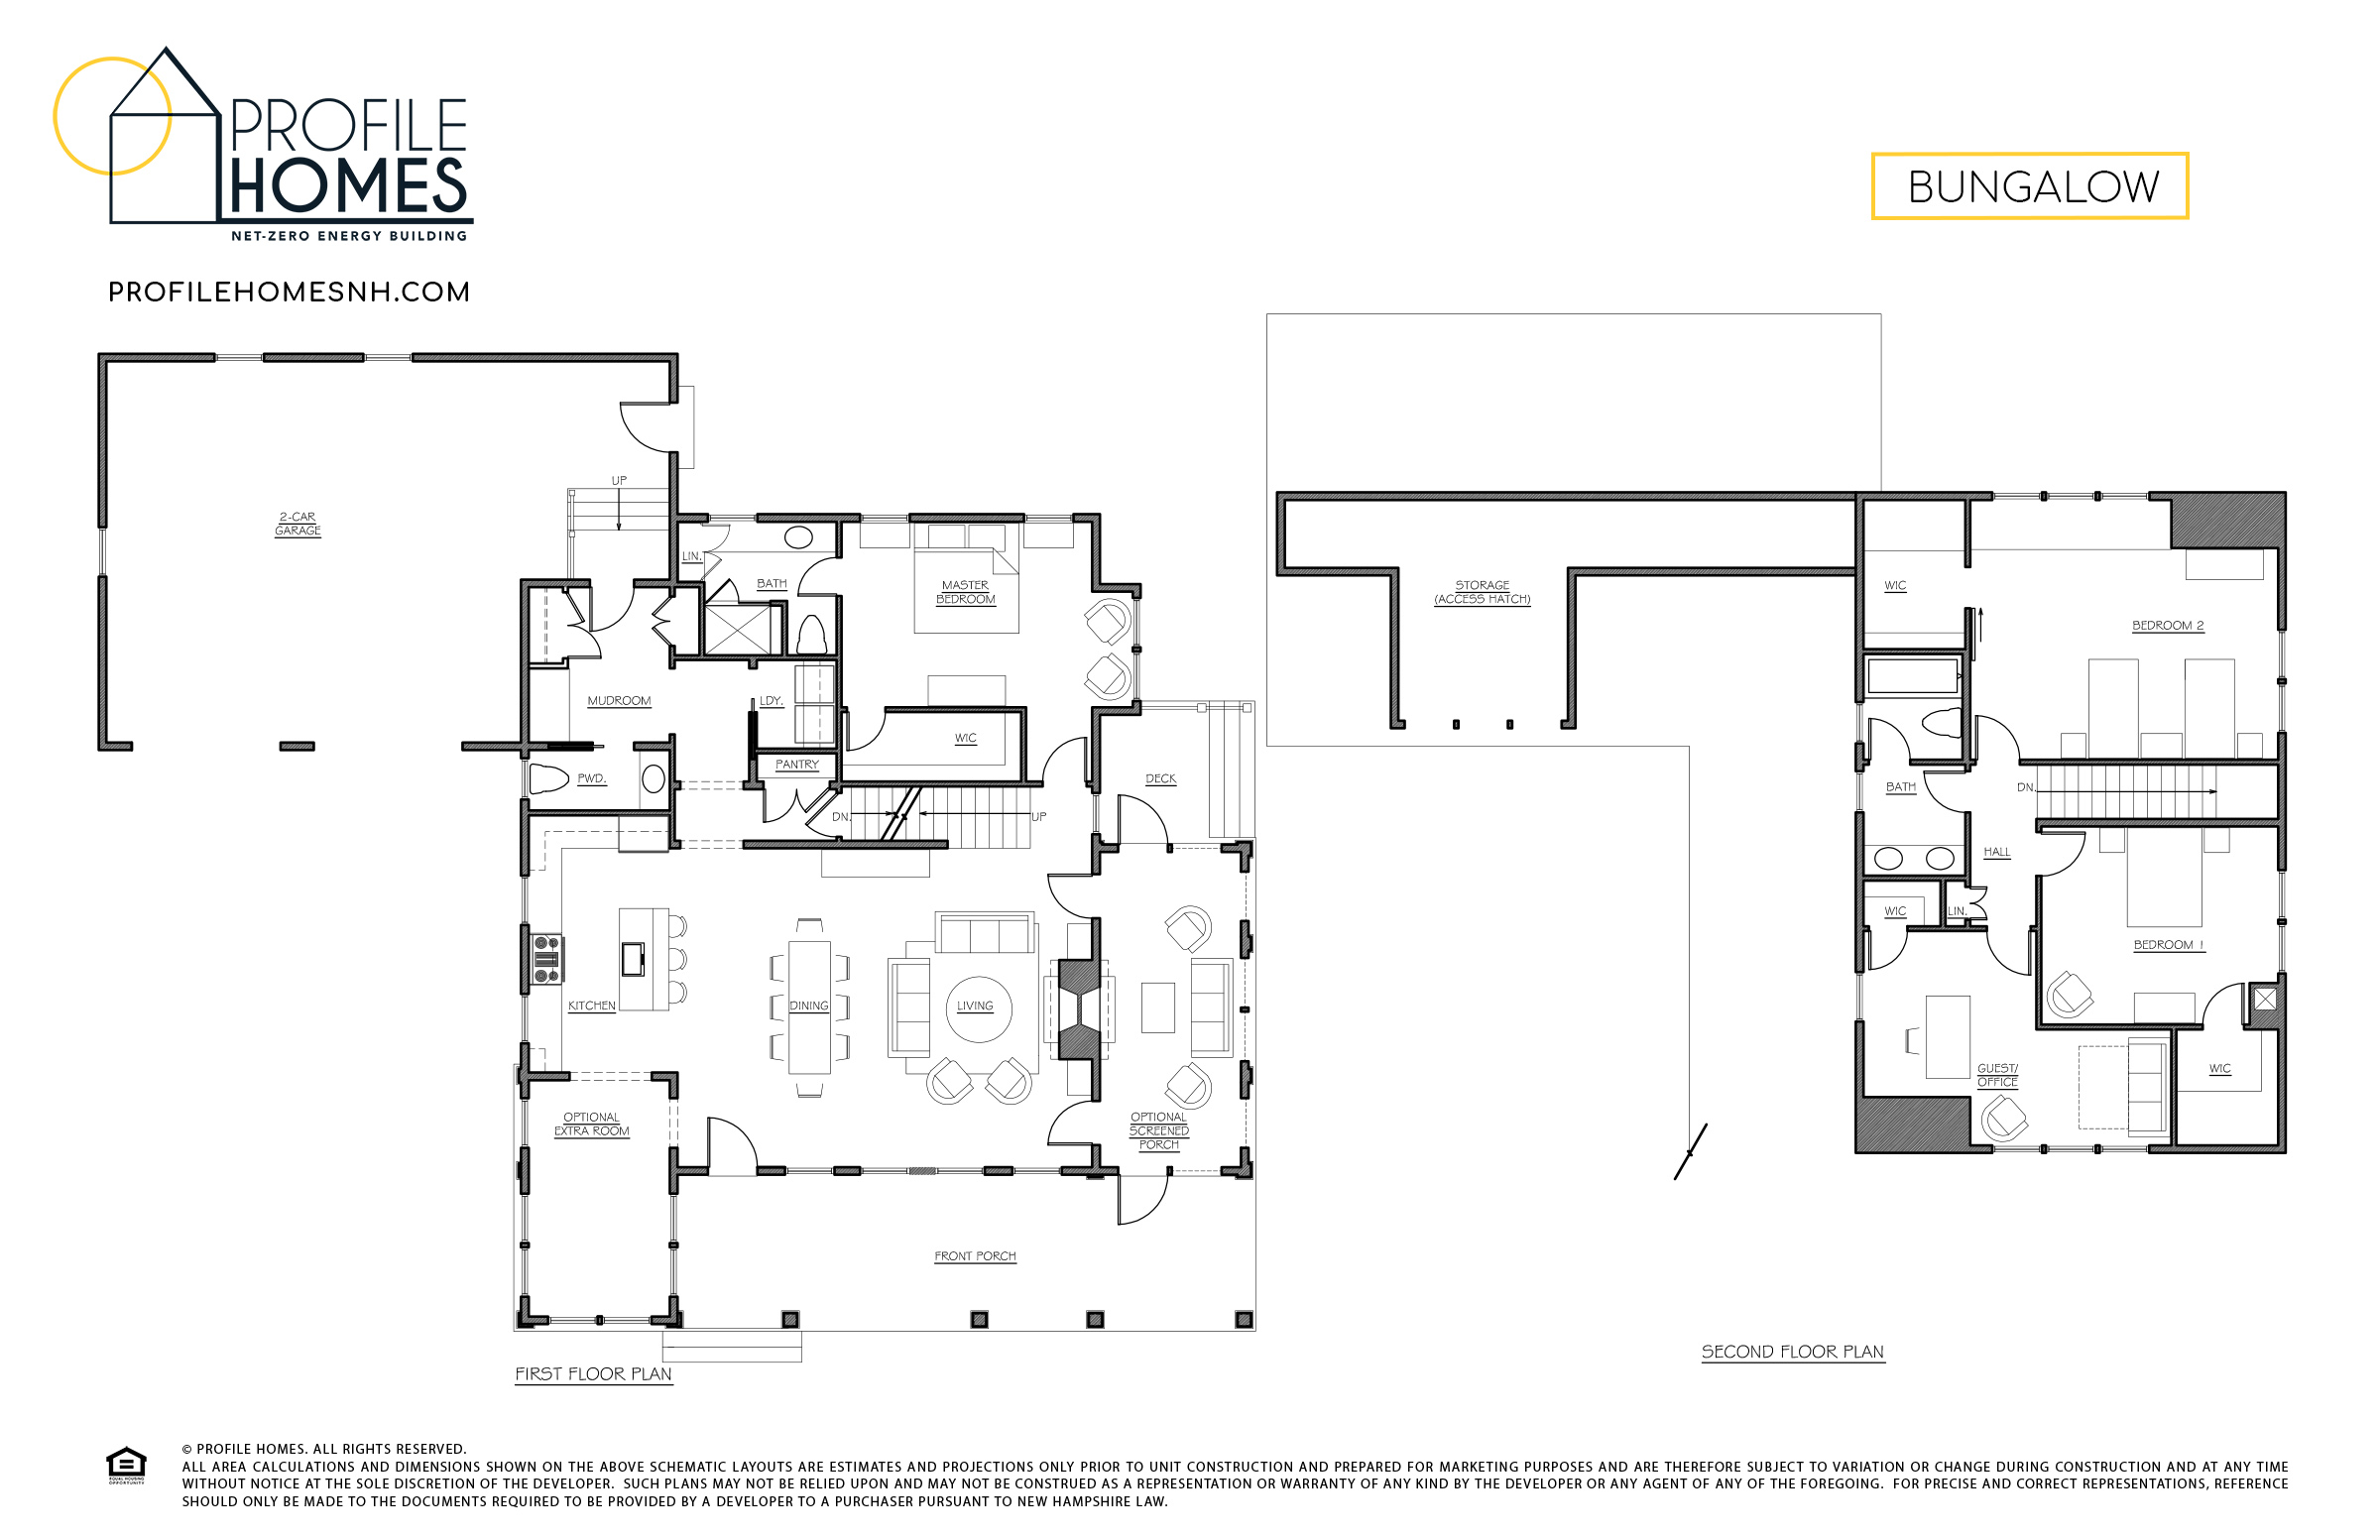 Profile Homes Floorplan Bungalow © 2018 Profile Homes